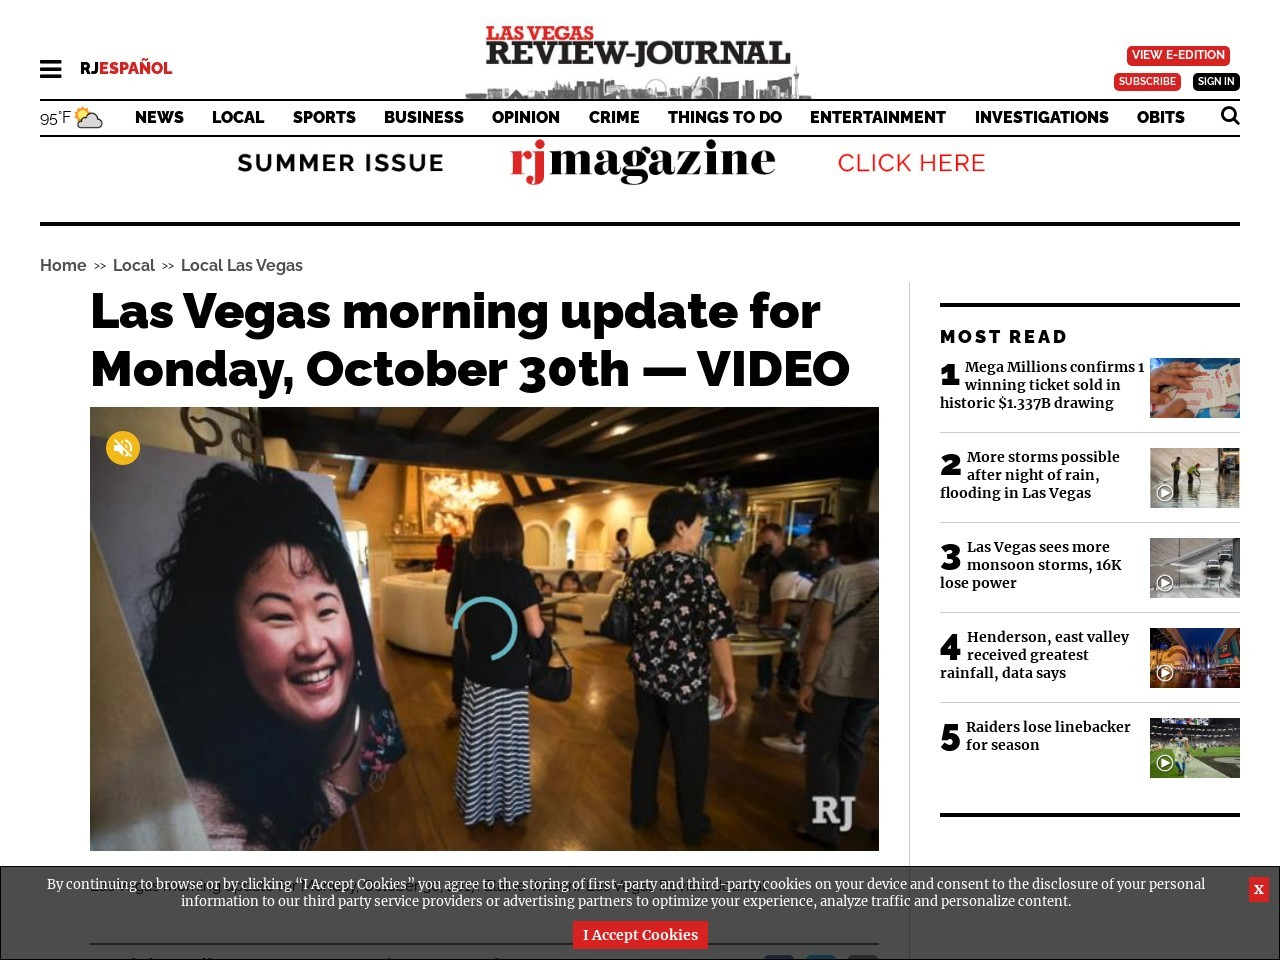 Las Vegas morning update for Monday, October 30th — VIDEO